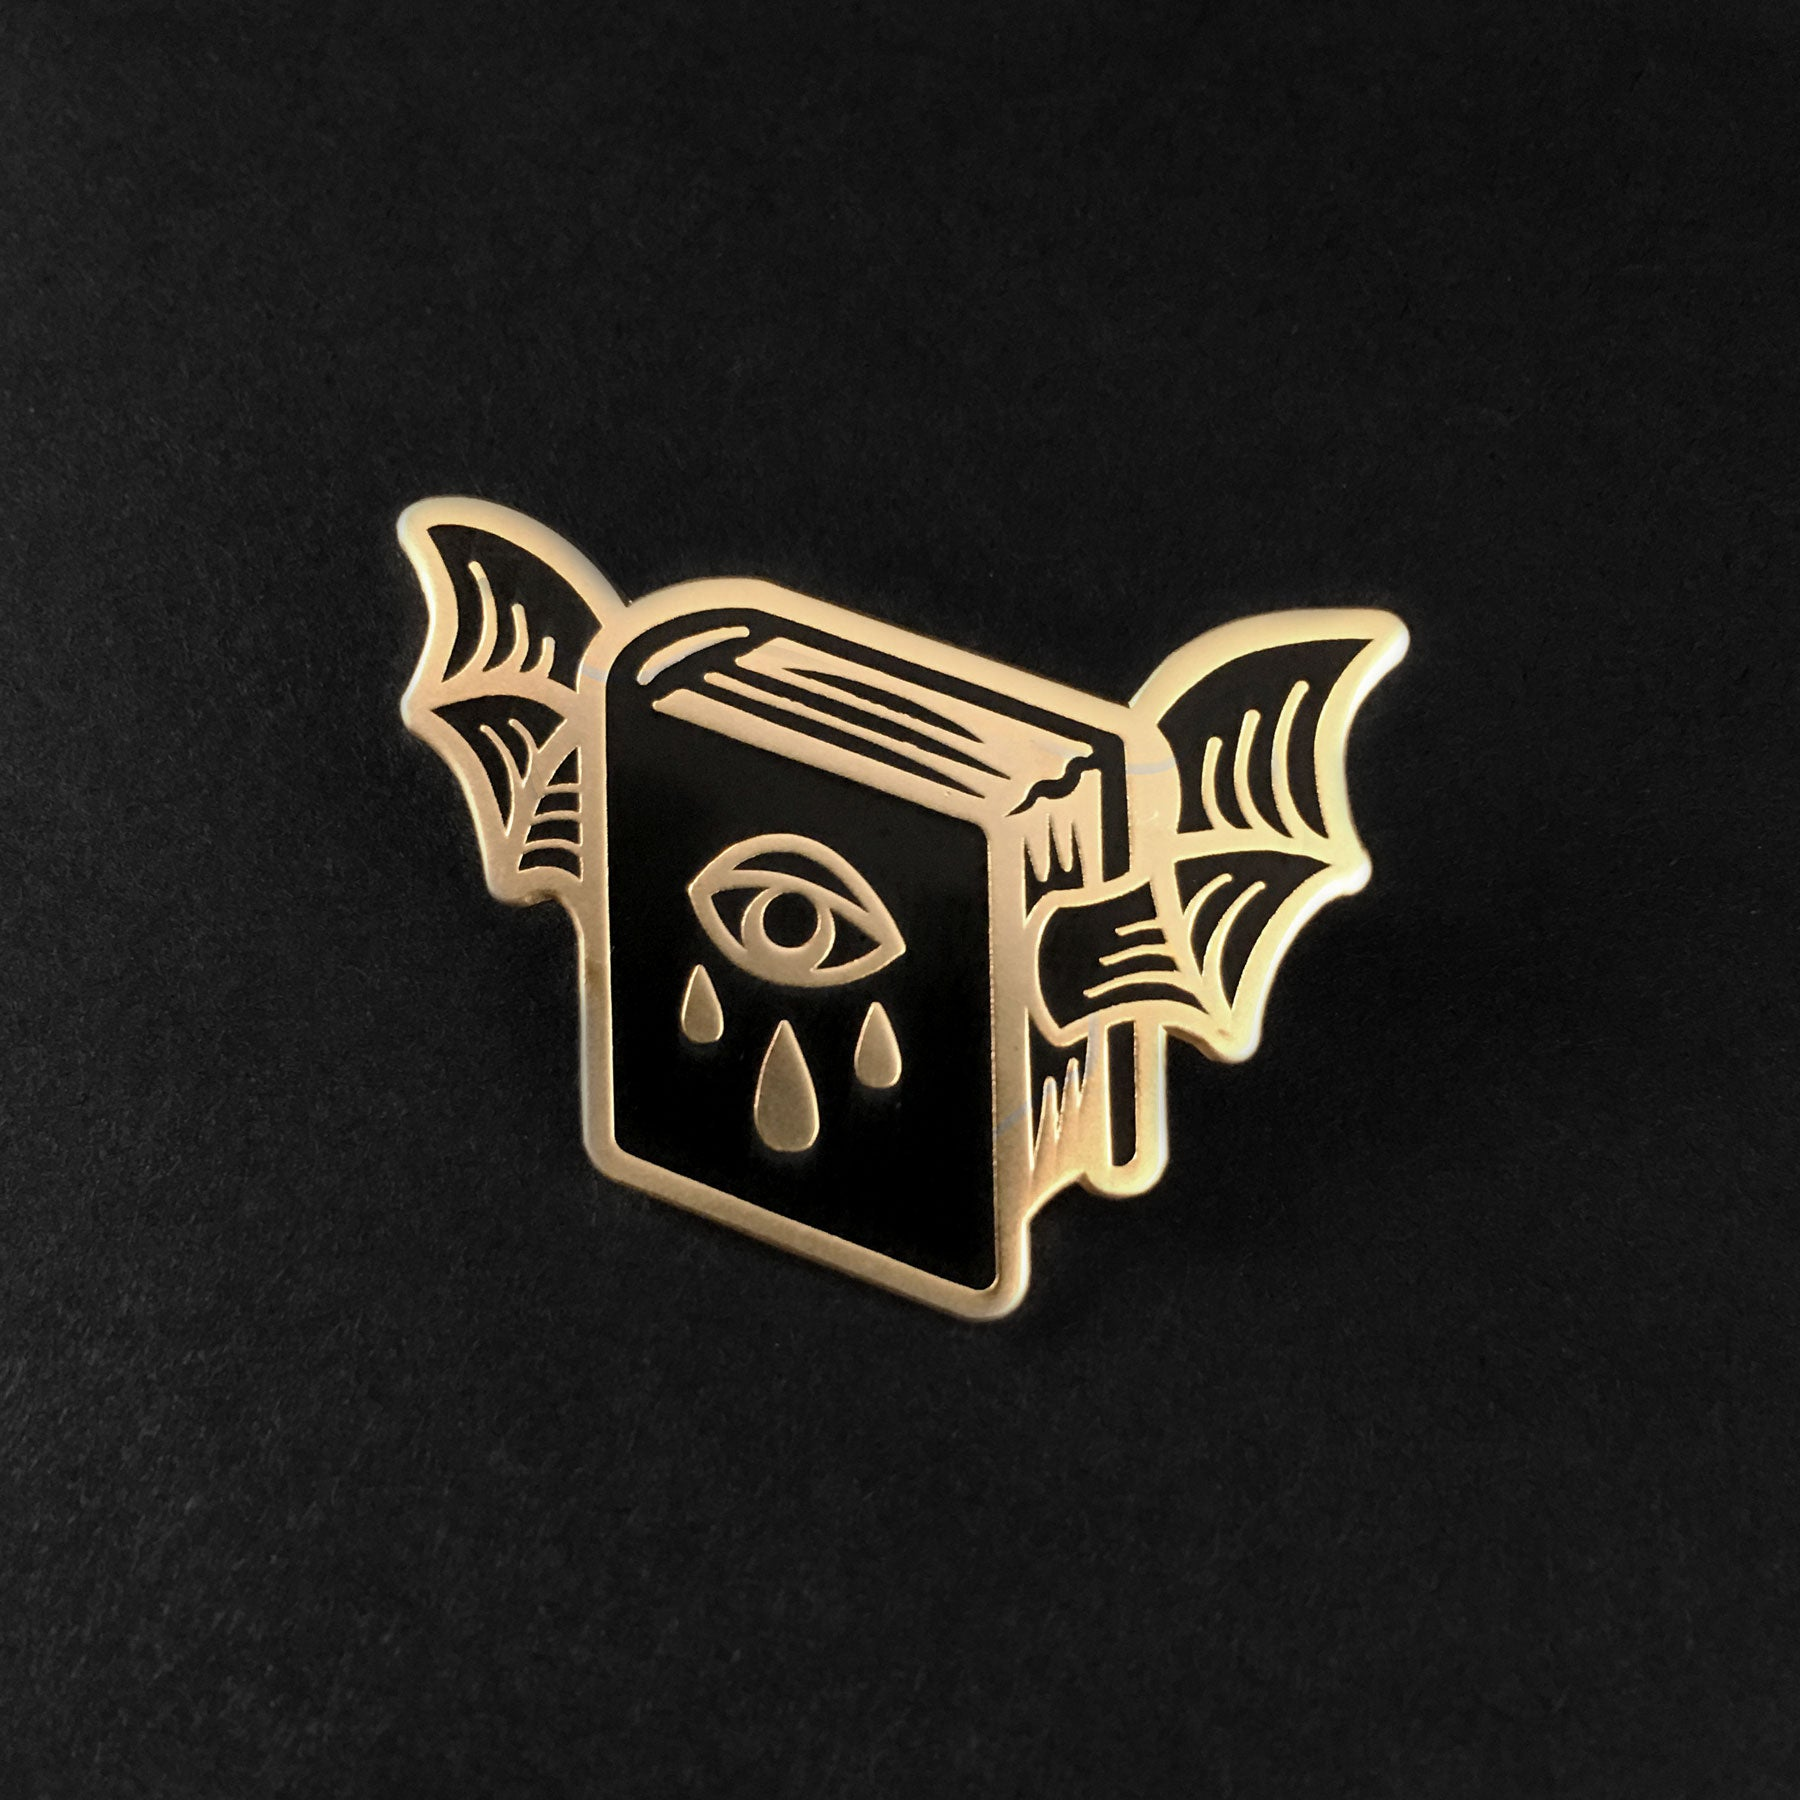 Book of Shadows Pin